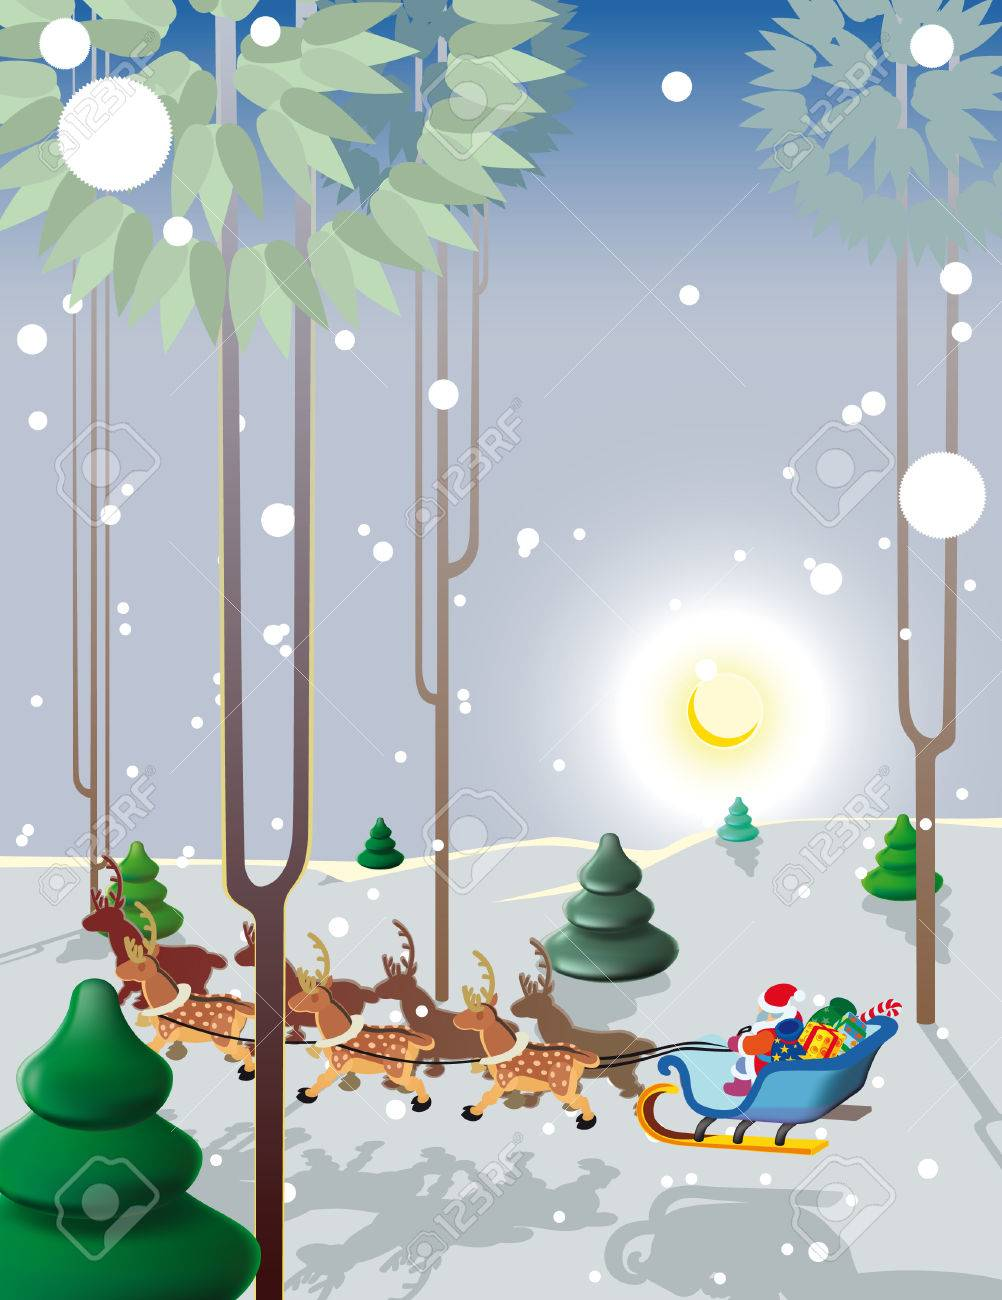 Santa Claus flies reindeer in the light of the moon low over the ground! Stock Vector - 8146235